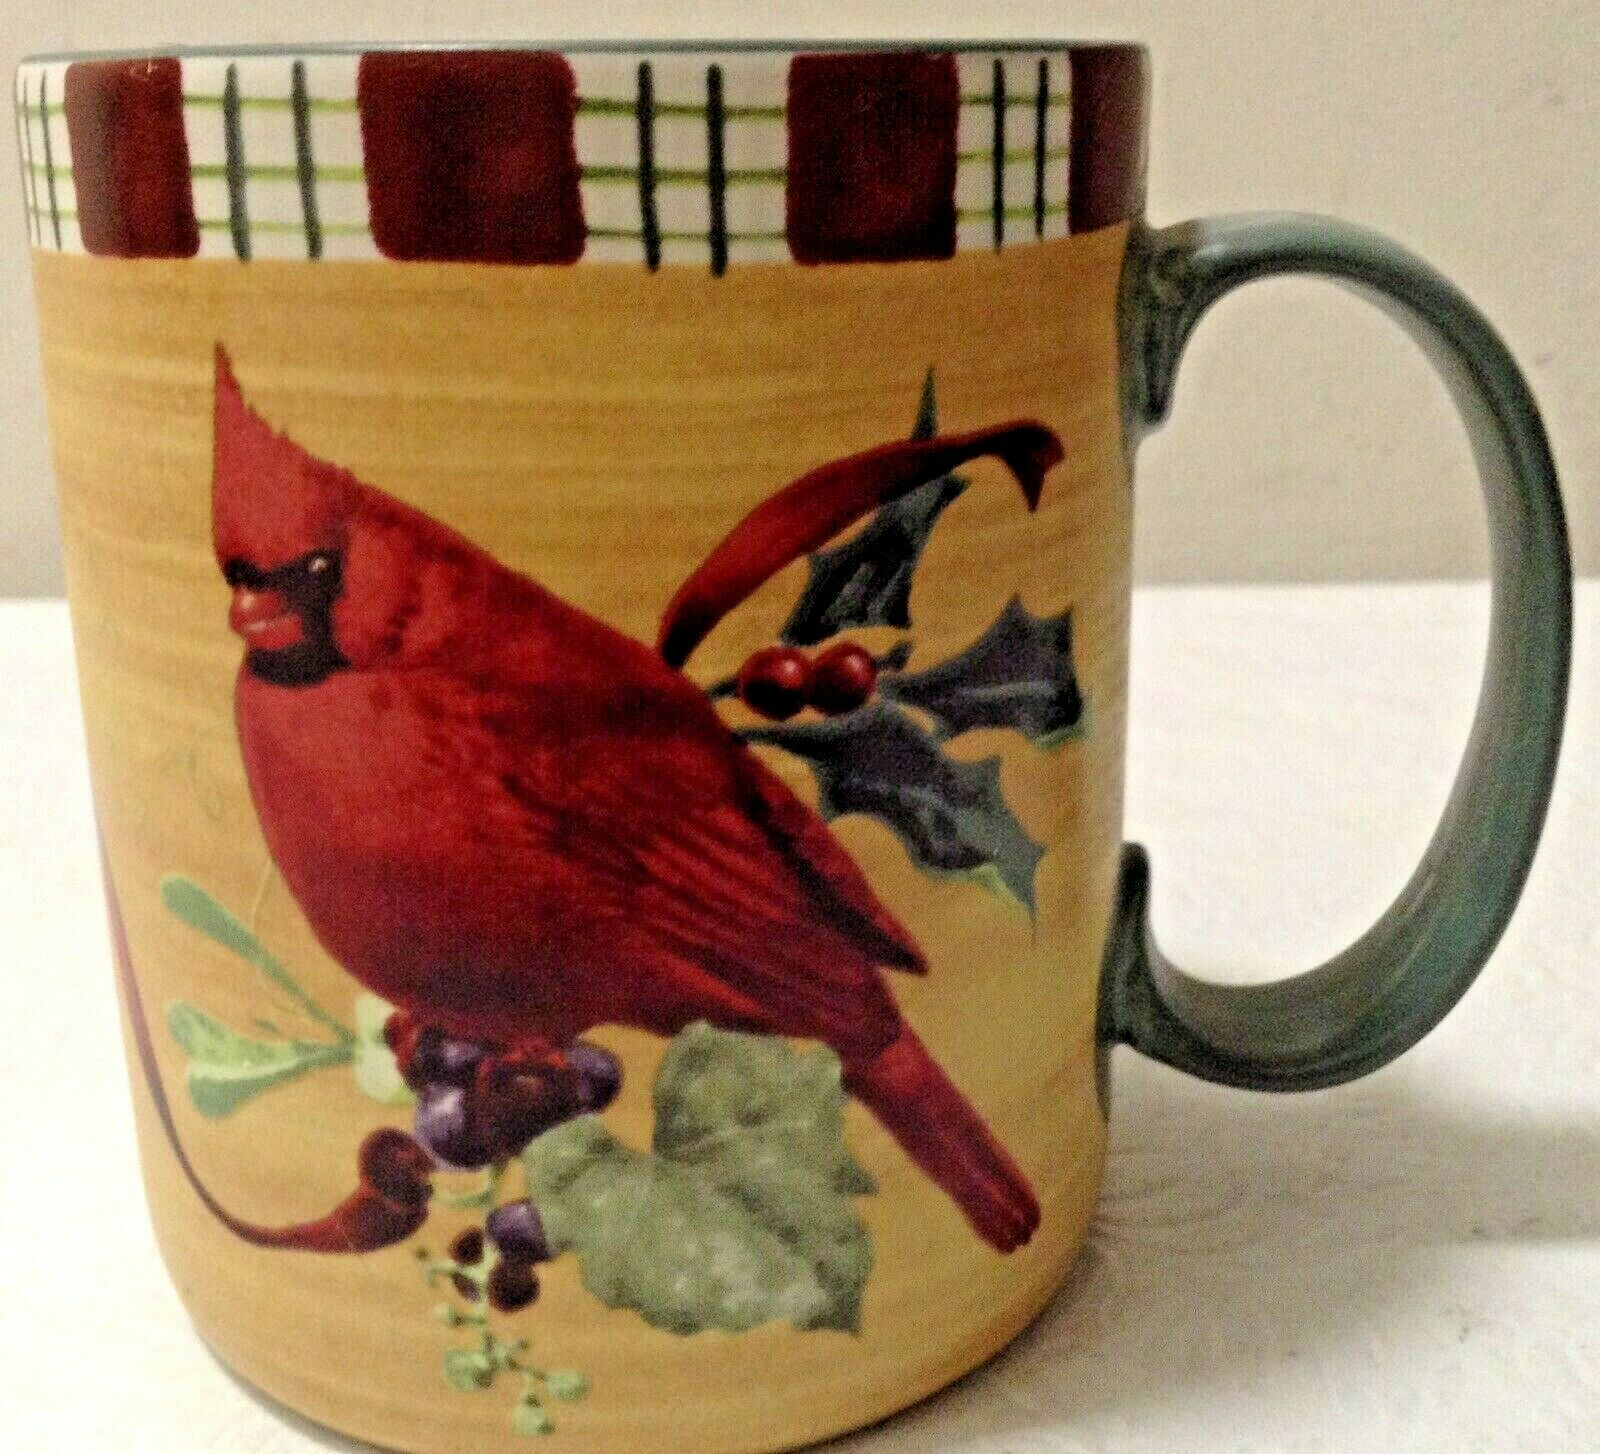 LENOX Winter Greetings Cardinal Freezer To Oven To Table Coffee Mug14 Oz - $14.95